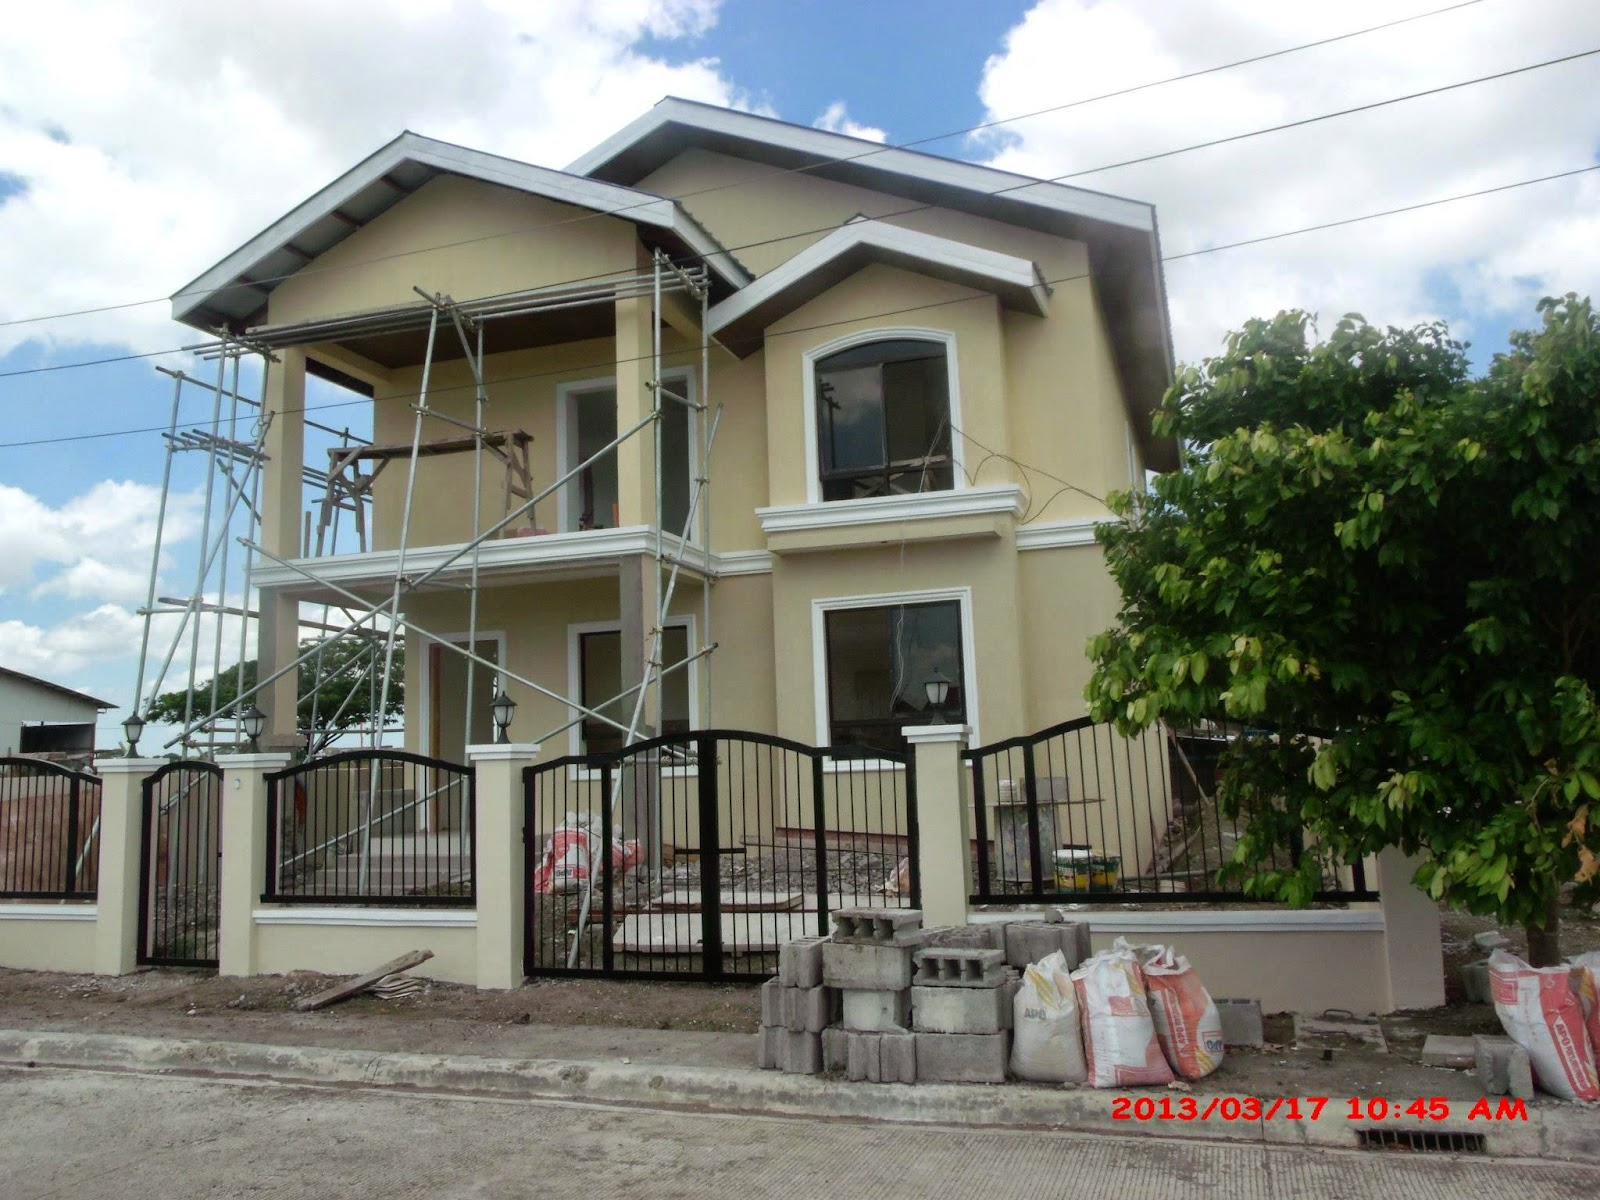 Savannah trails house construction project in oton iloilo Simple home designs photos